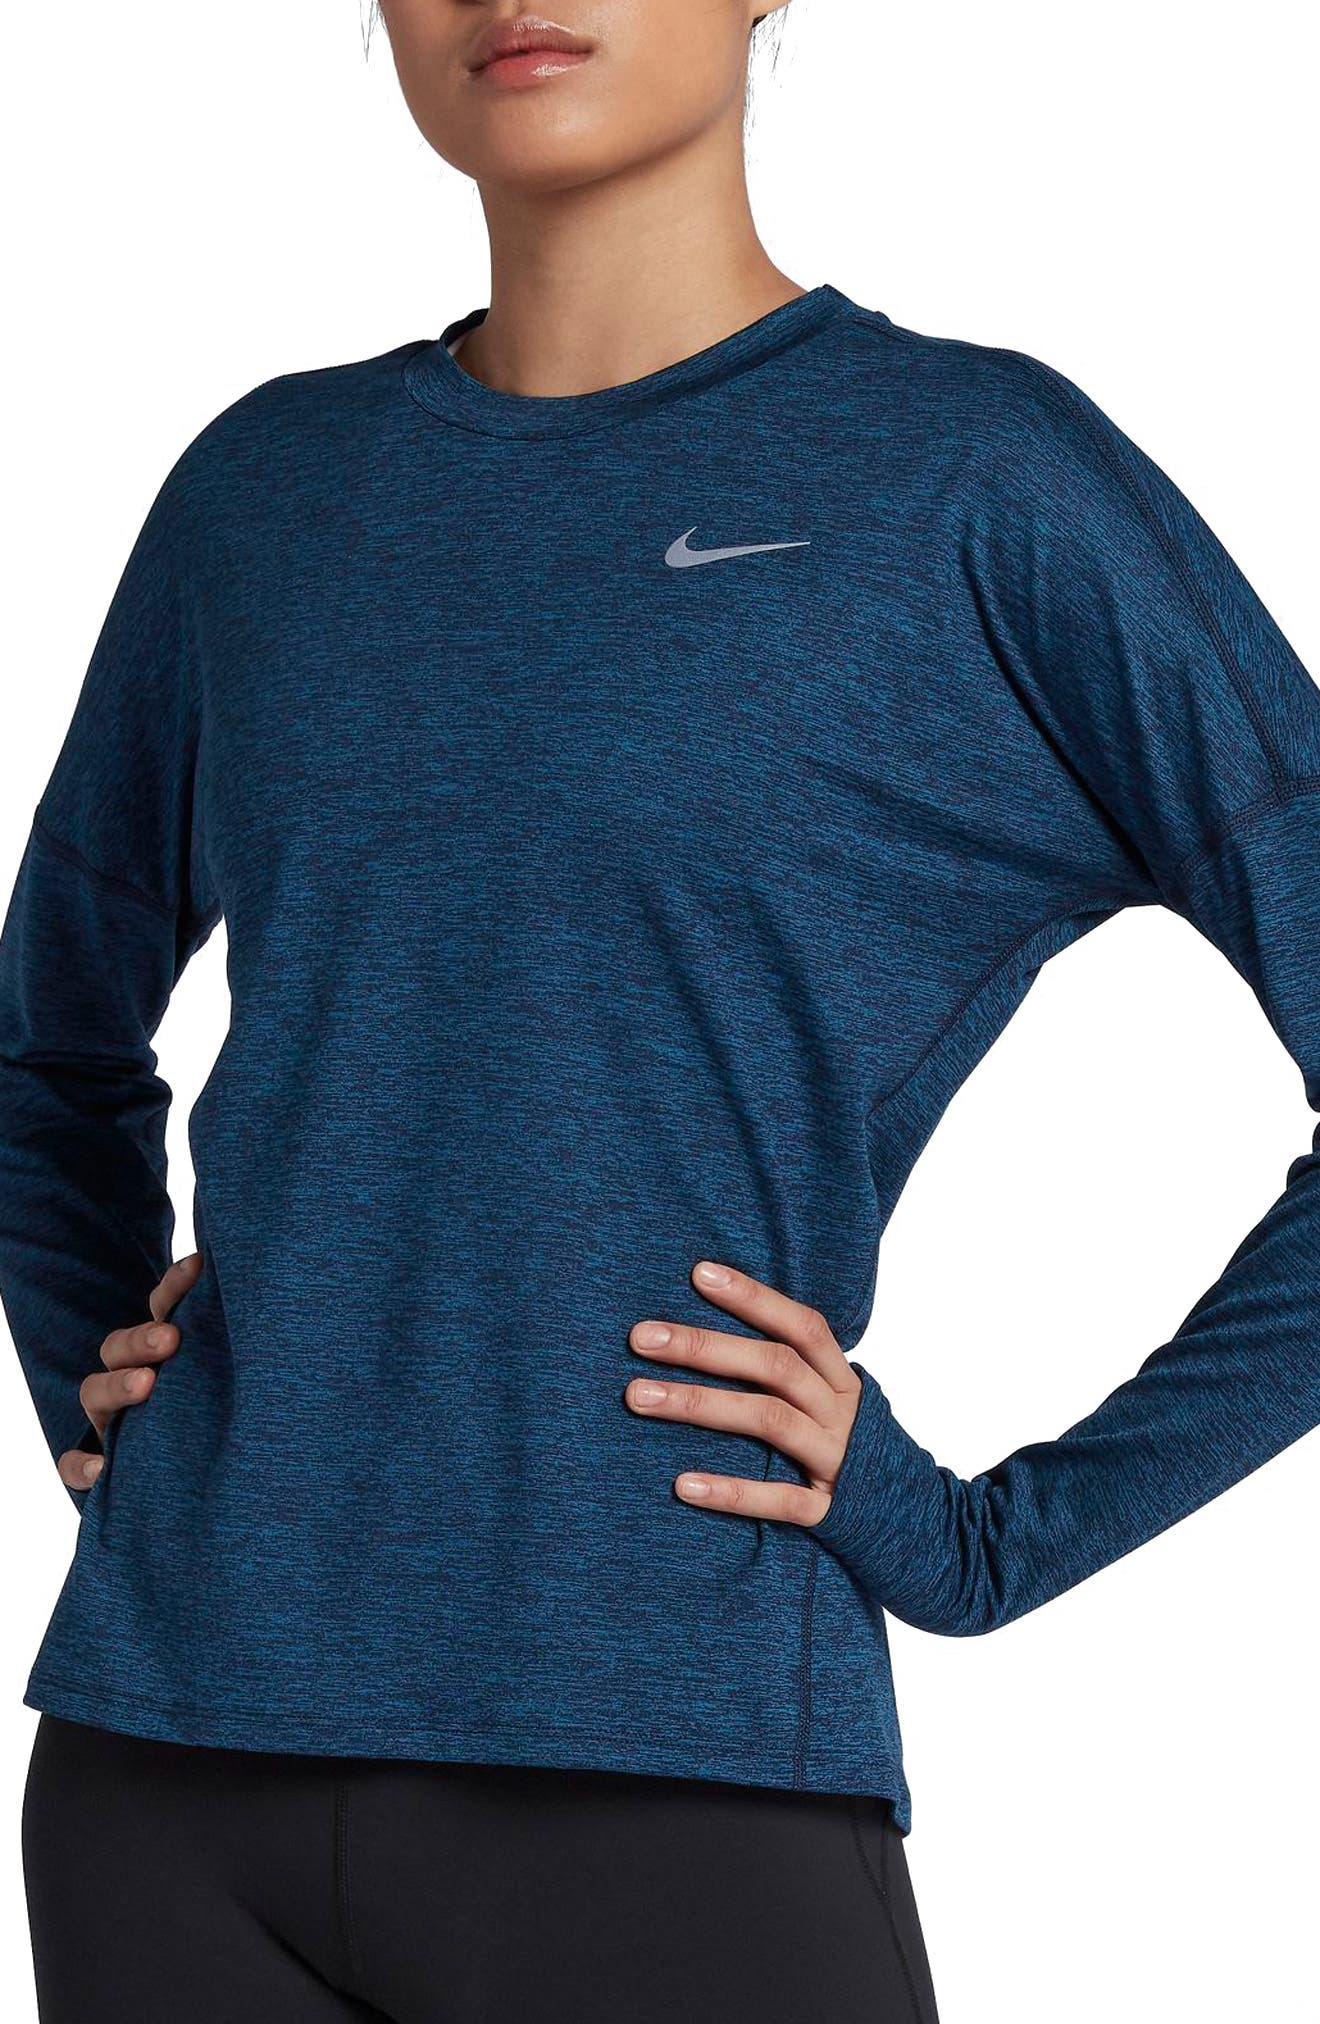 Dry Element Long Sleeve Top,                         Main,                         color, Obsidian/ Blue Force/ Heather